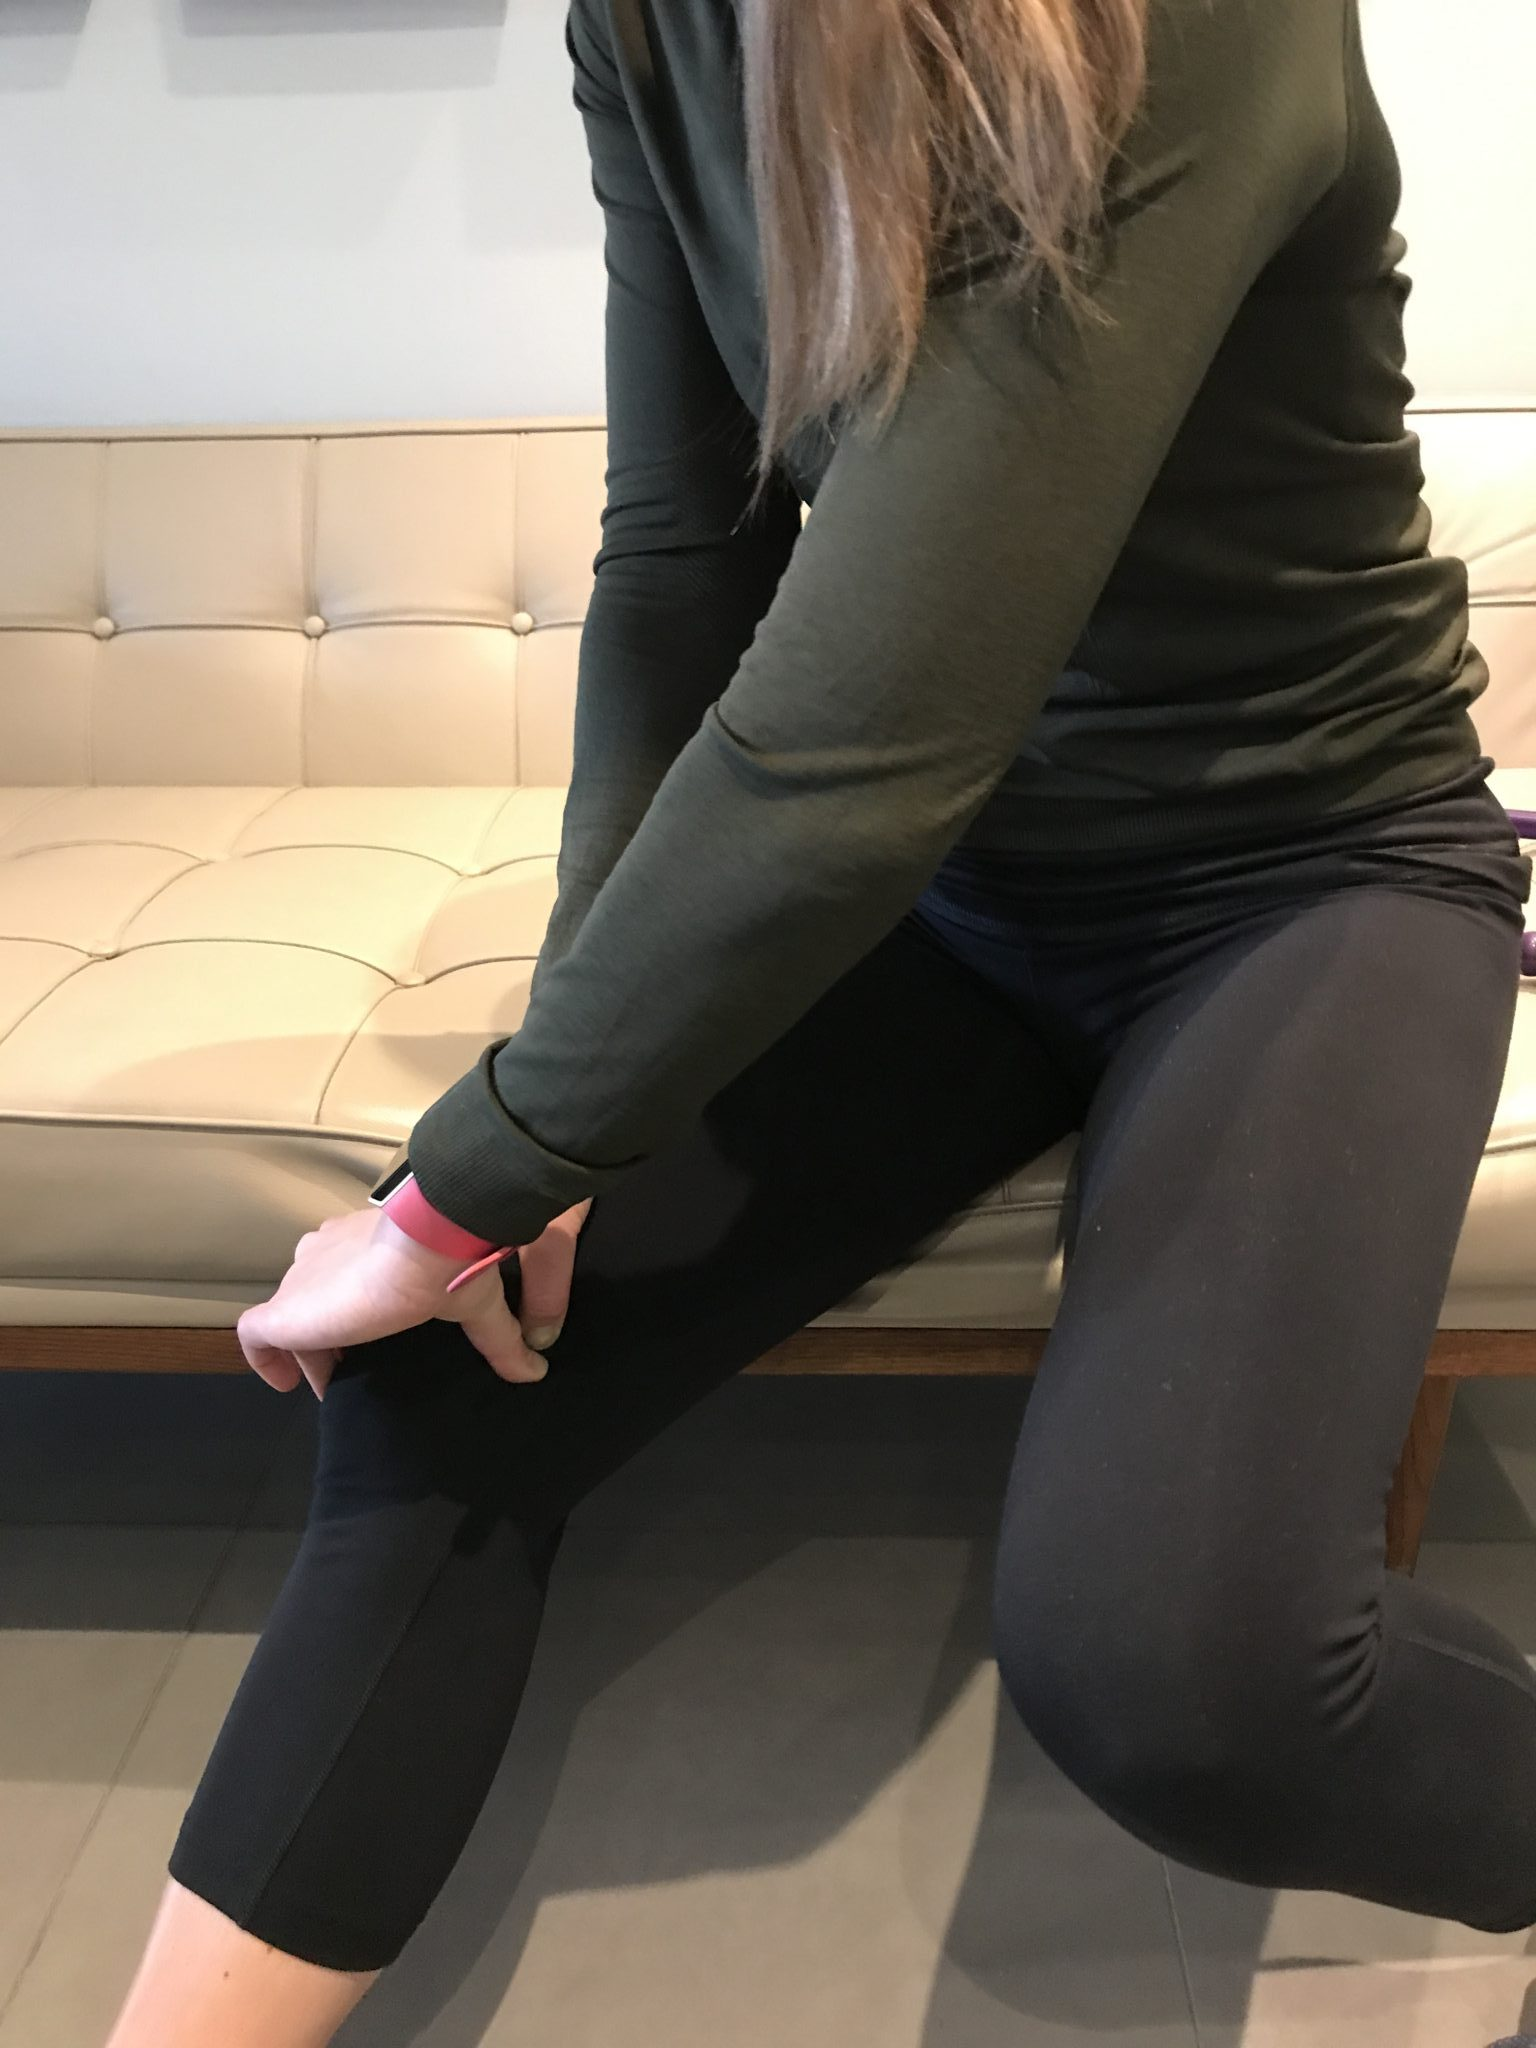 Delos therapy for knee pain around your vastus medialis